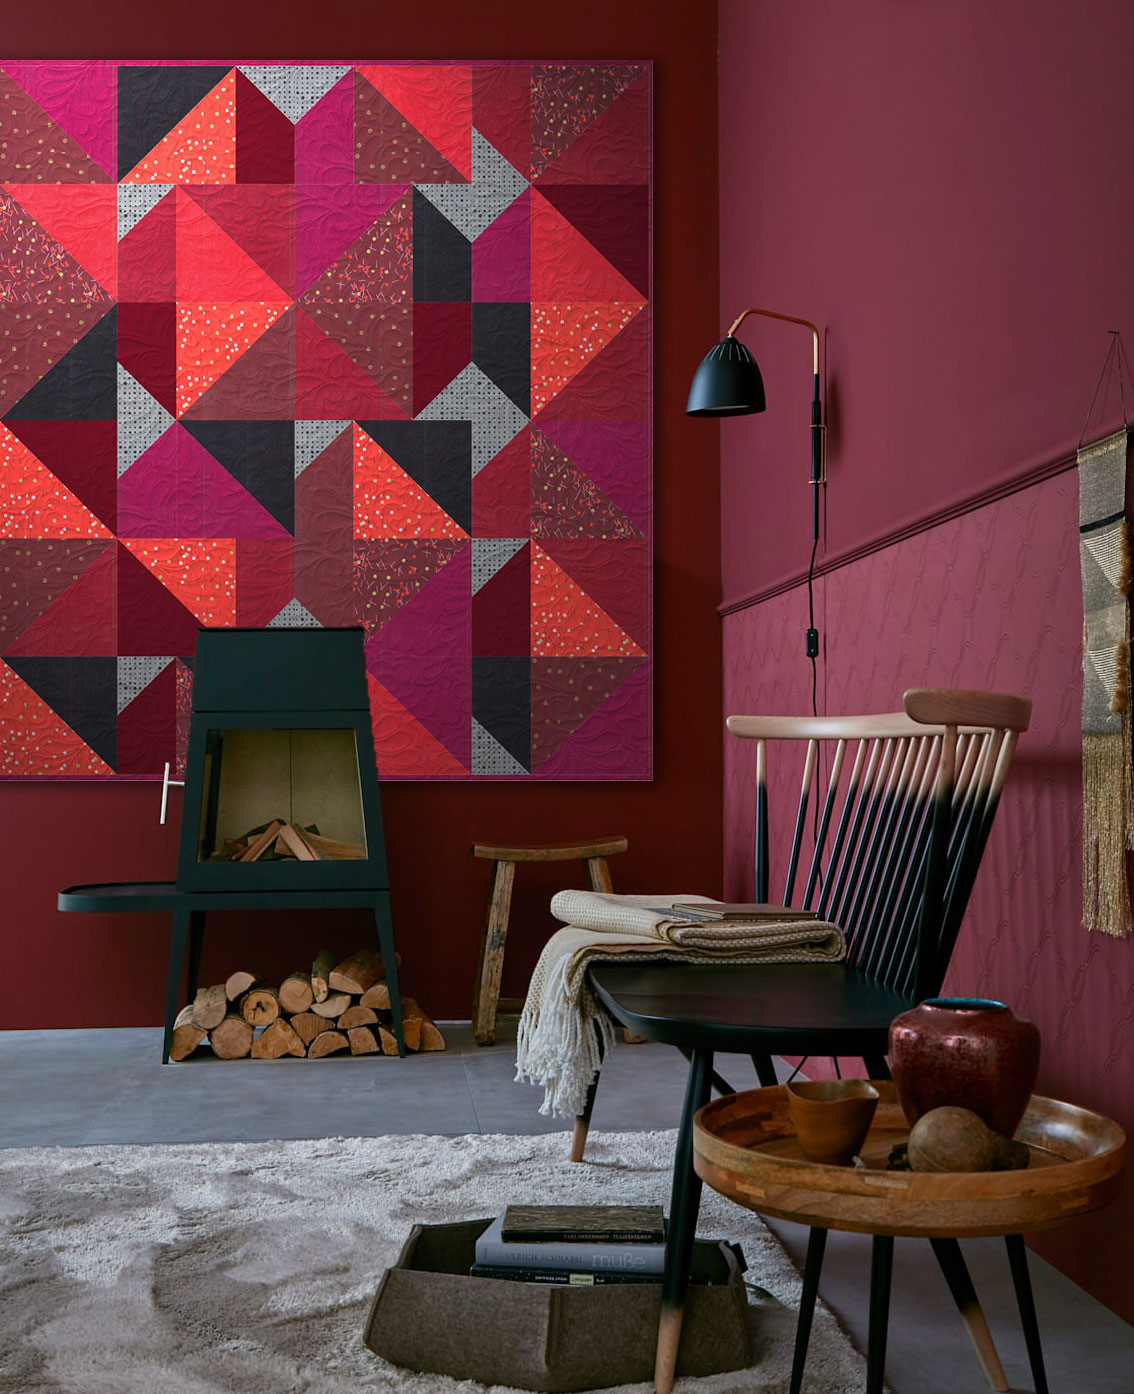 Zen Chic's Peaks pattern is a great opportunity to show off the depth and diversity of the Just Red fabric line.